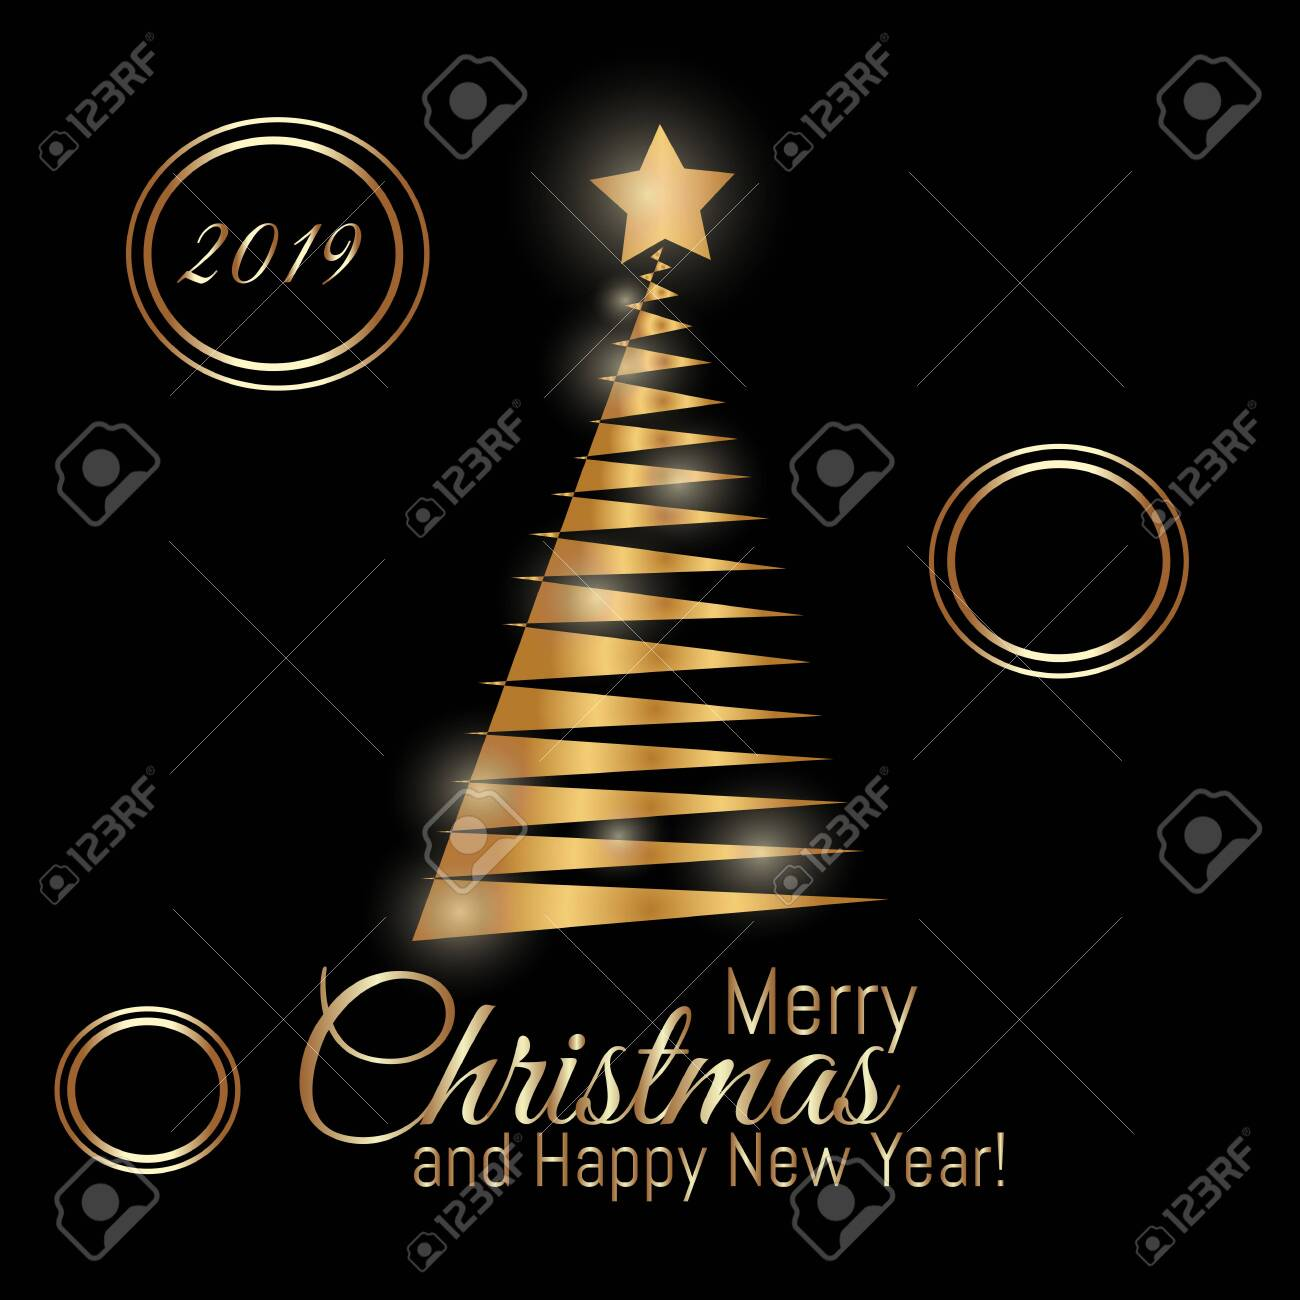 Gold Merry Christmas Card With New Year Tree And With 2019 Number